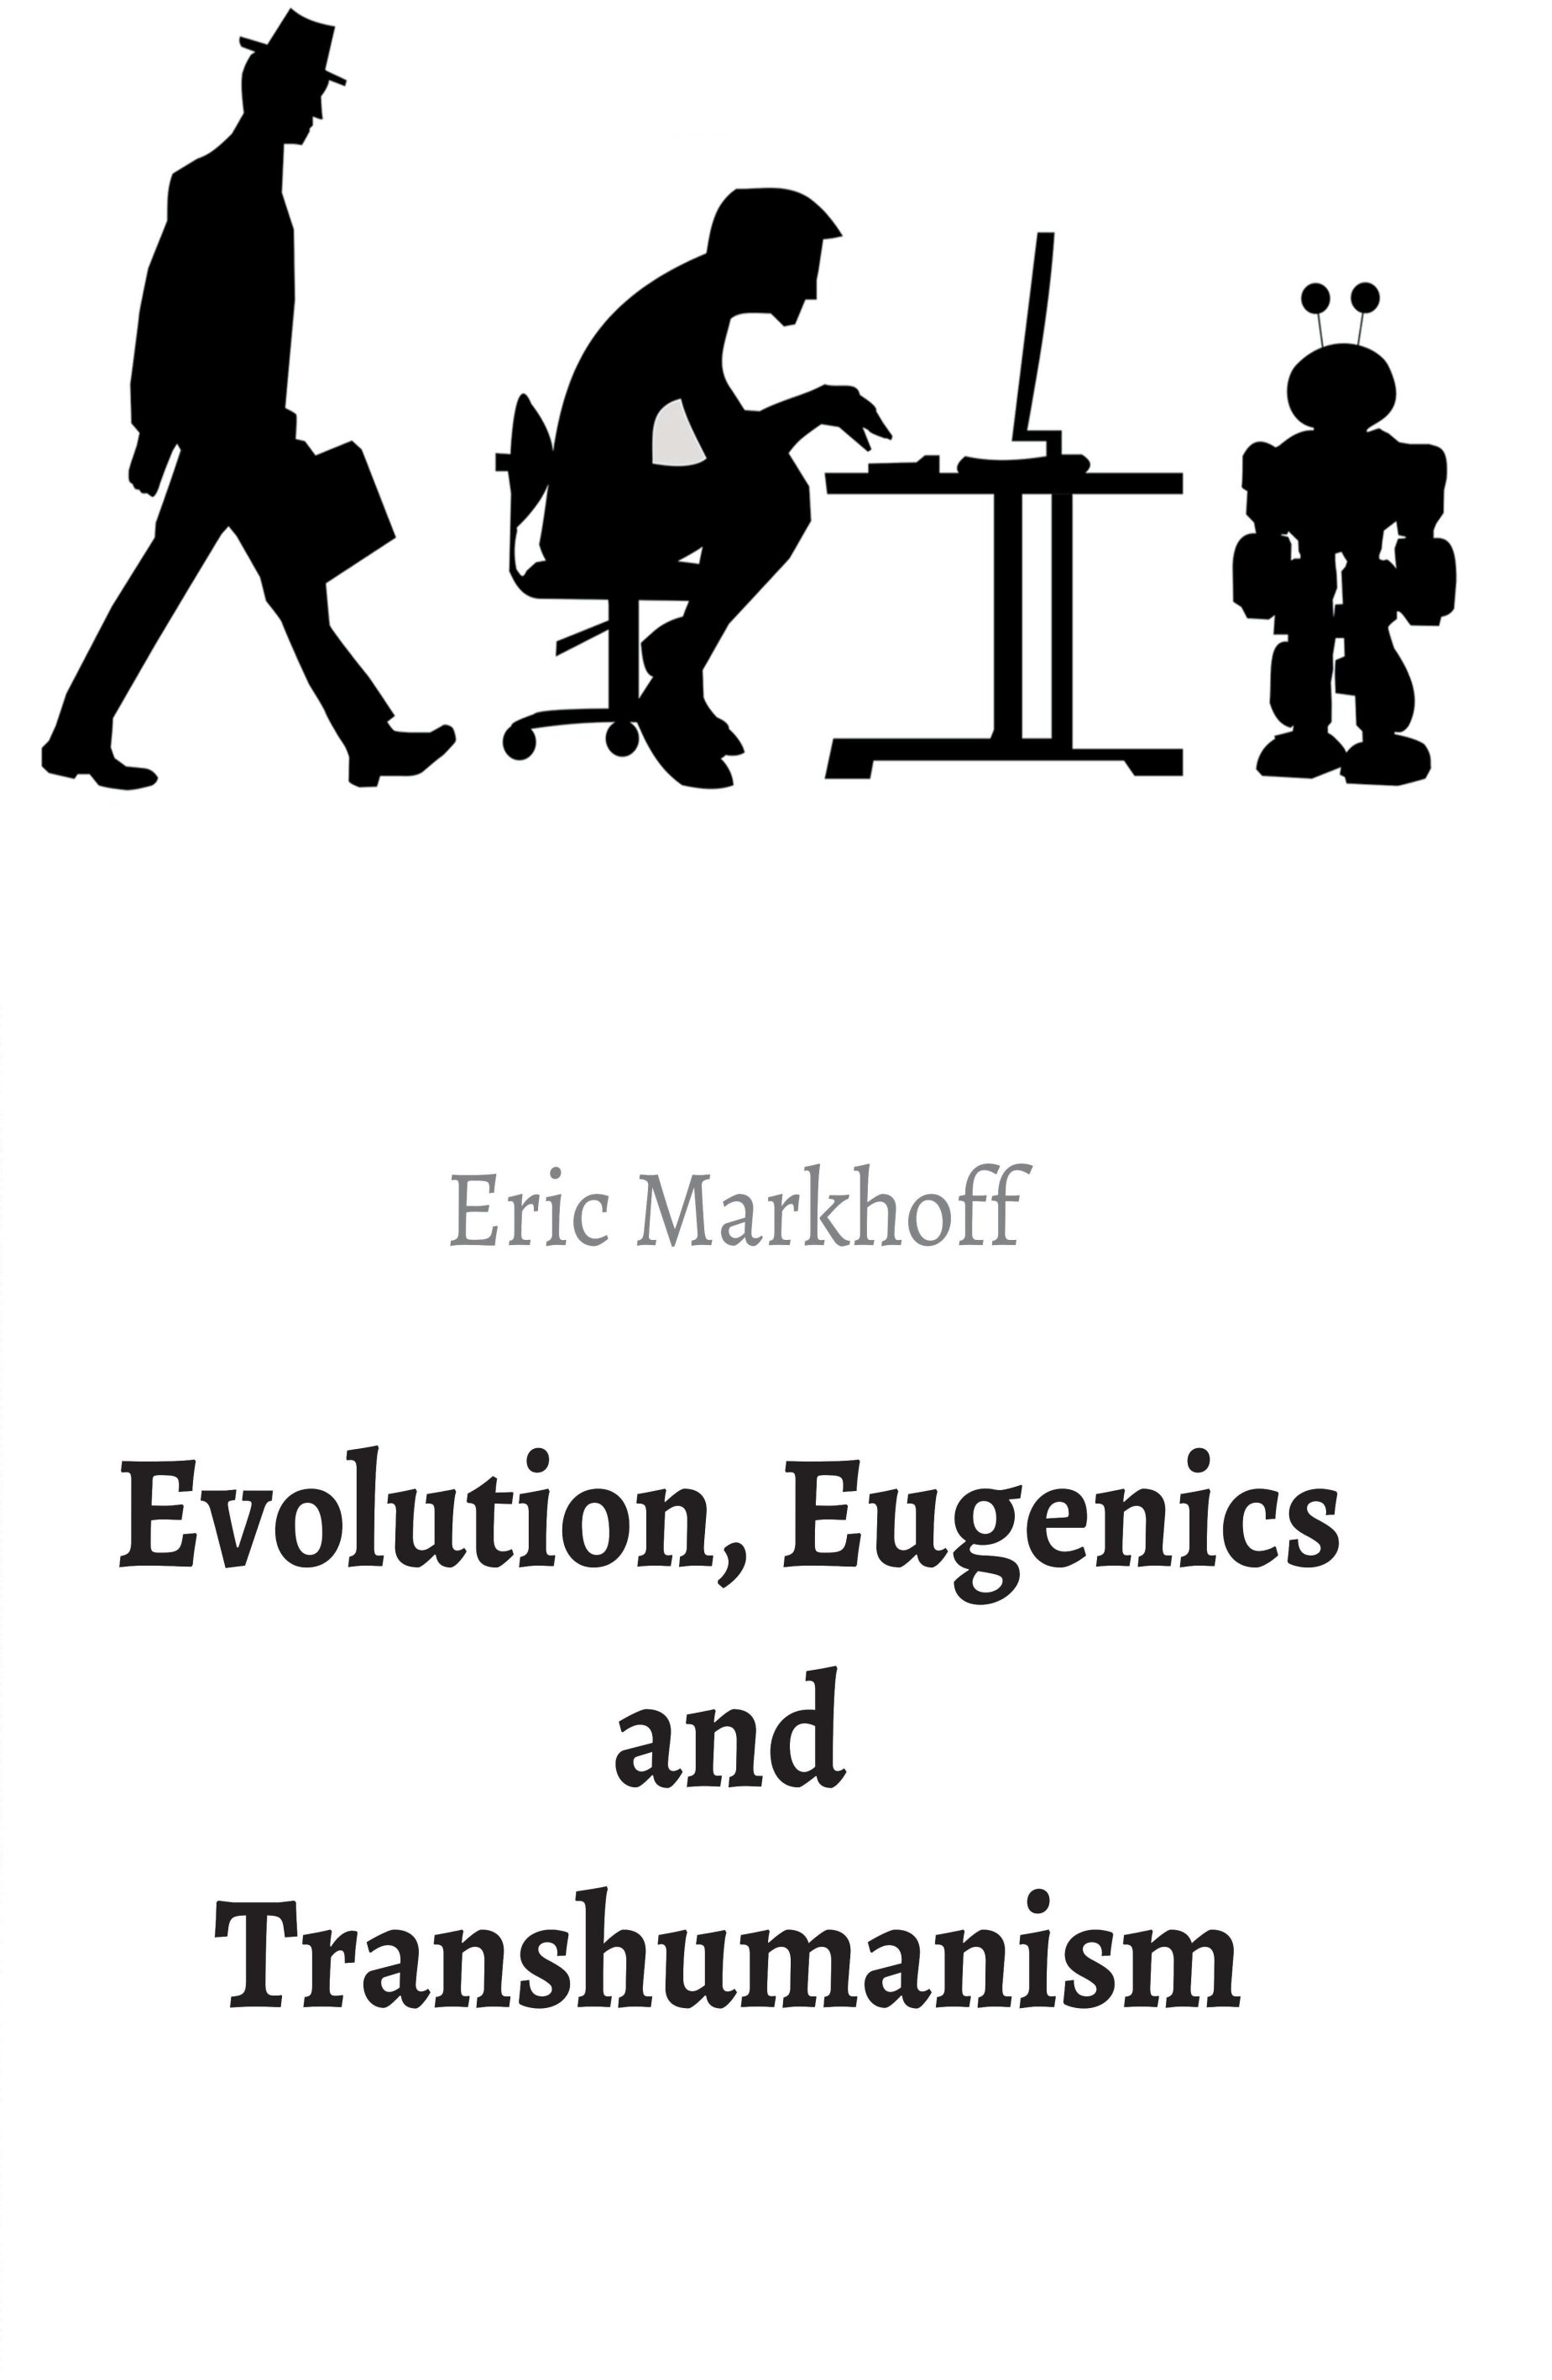 Evolution, Eugenics and Transhumanism -A thought provoking (un)natural science book